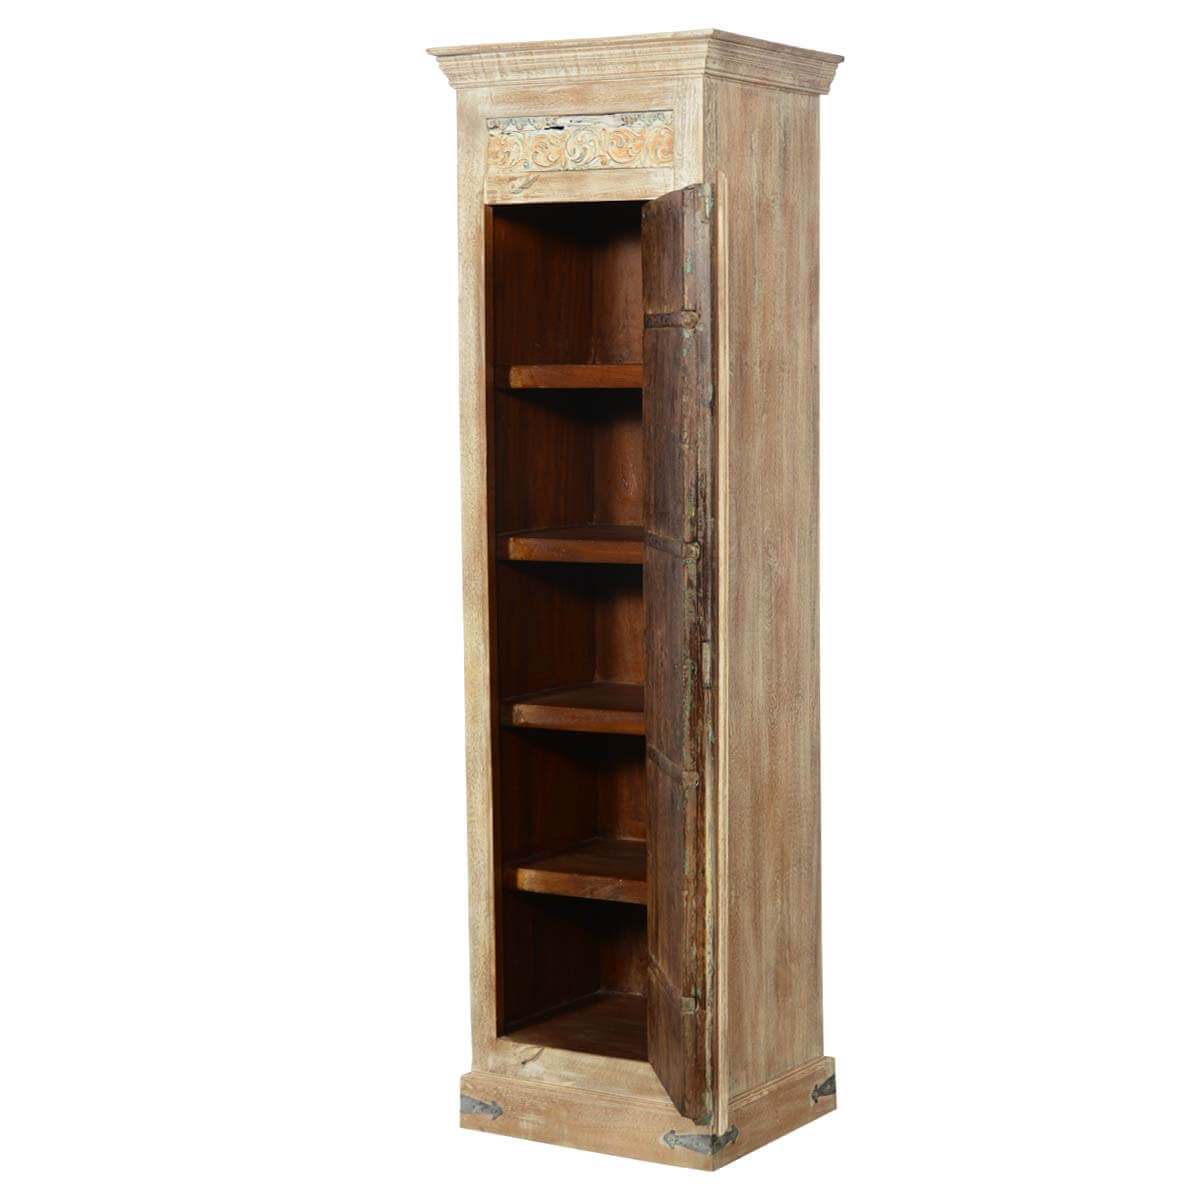 Tall Wooden Storage Cabinets ~ Quot tall reclaimed wood storage armoire cabinet